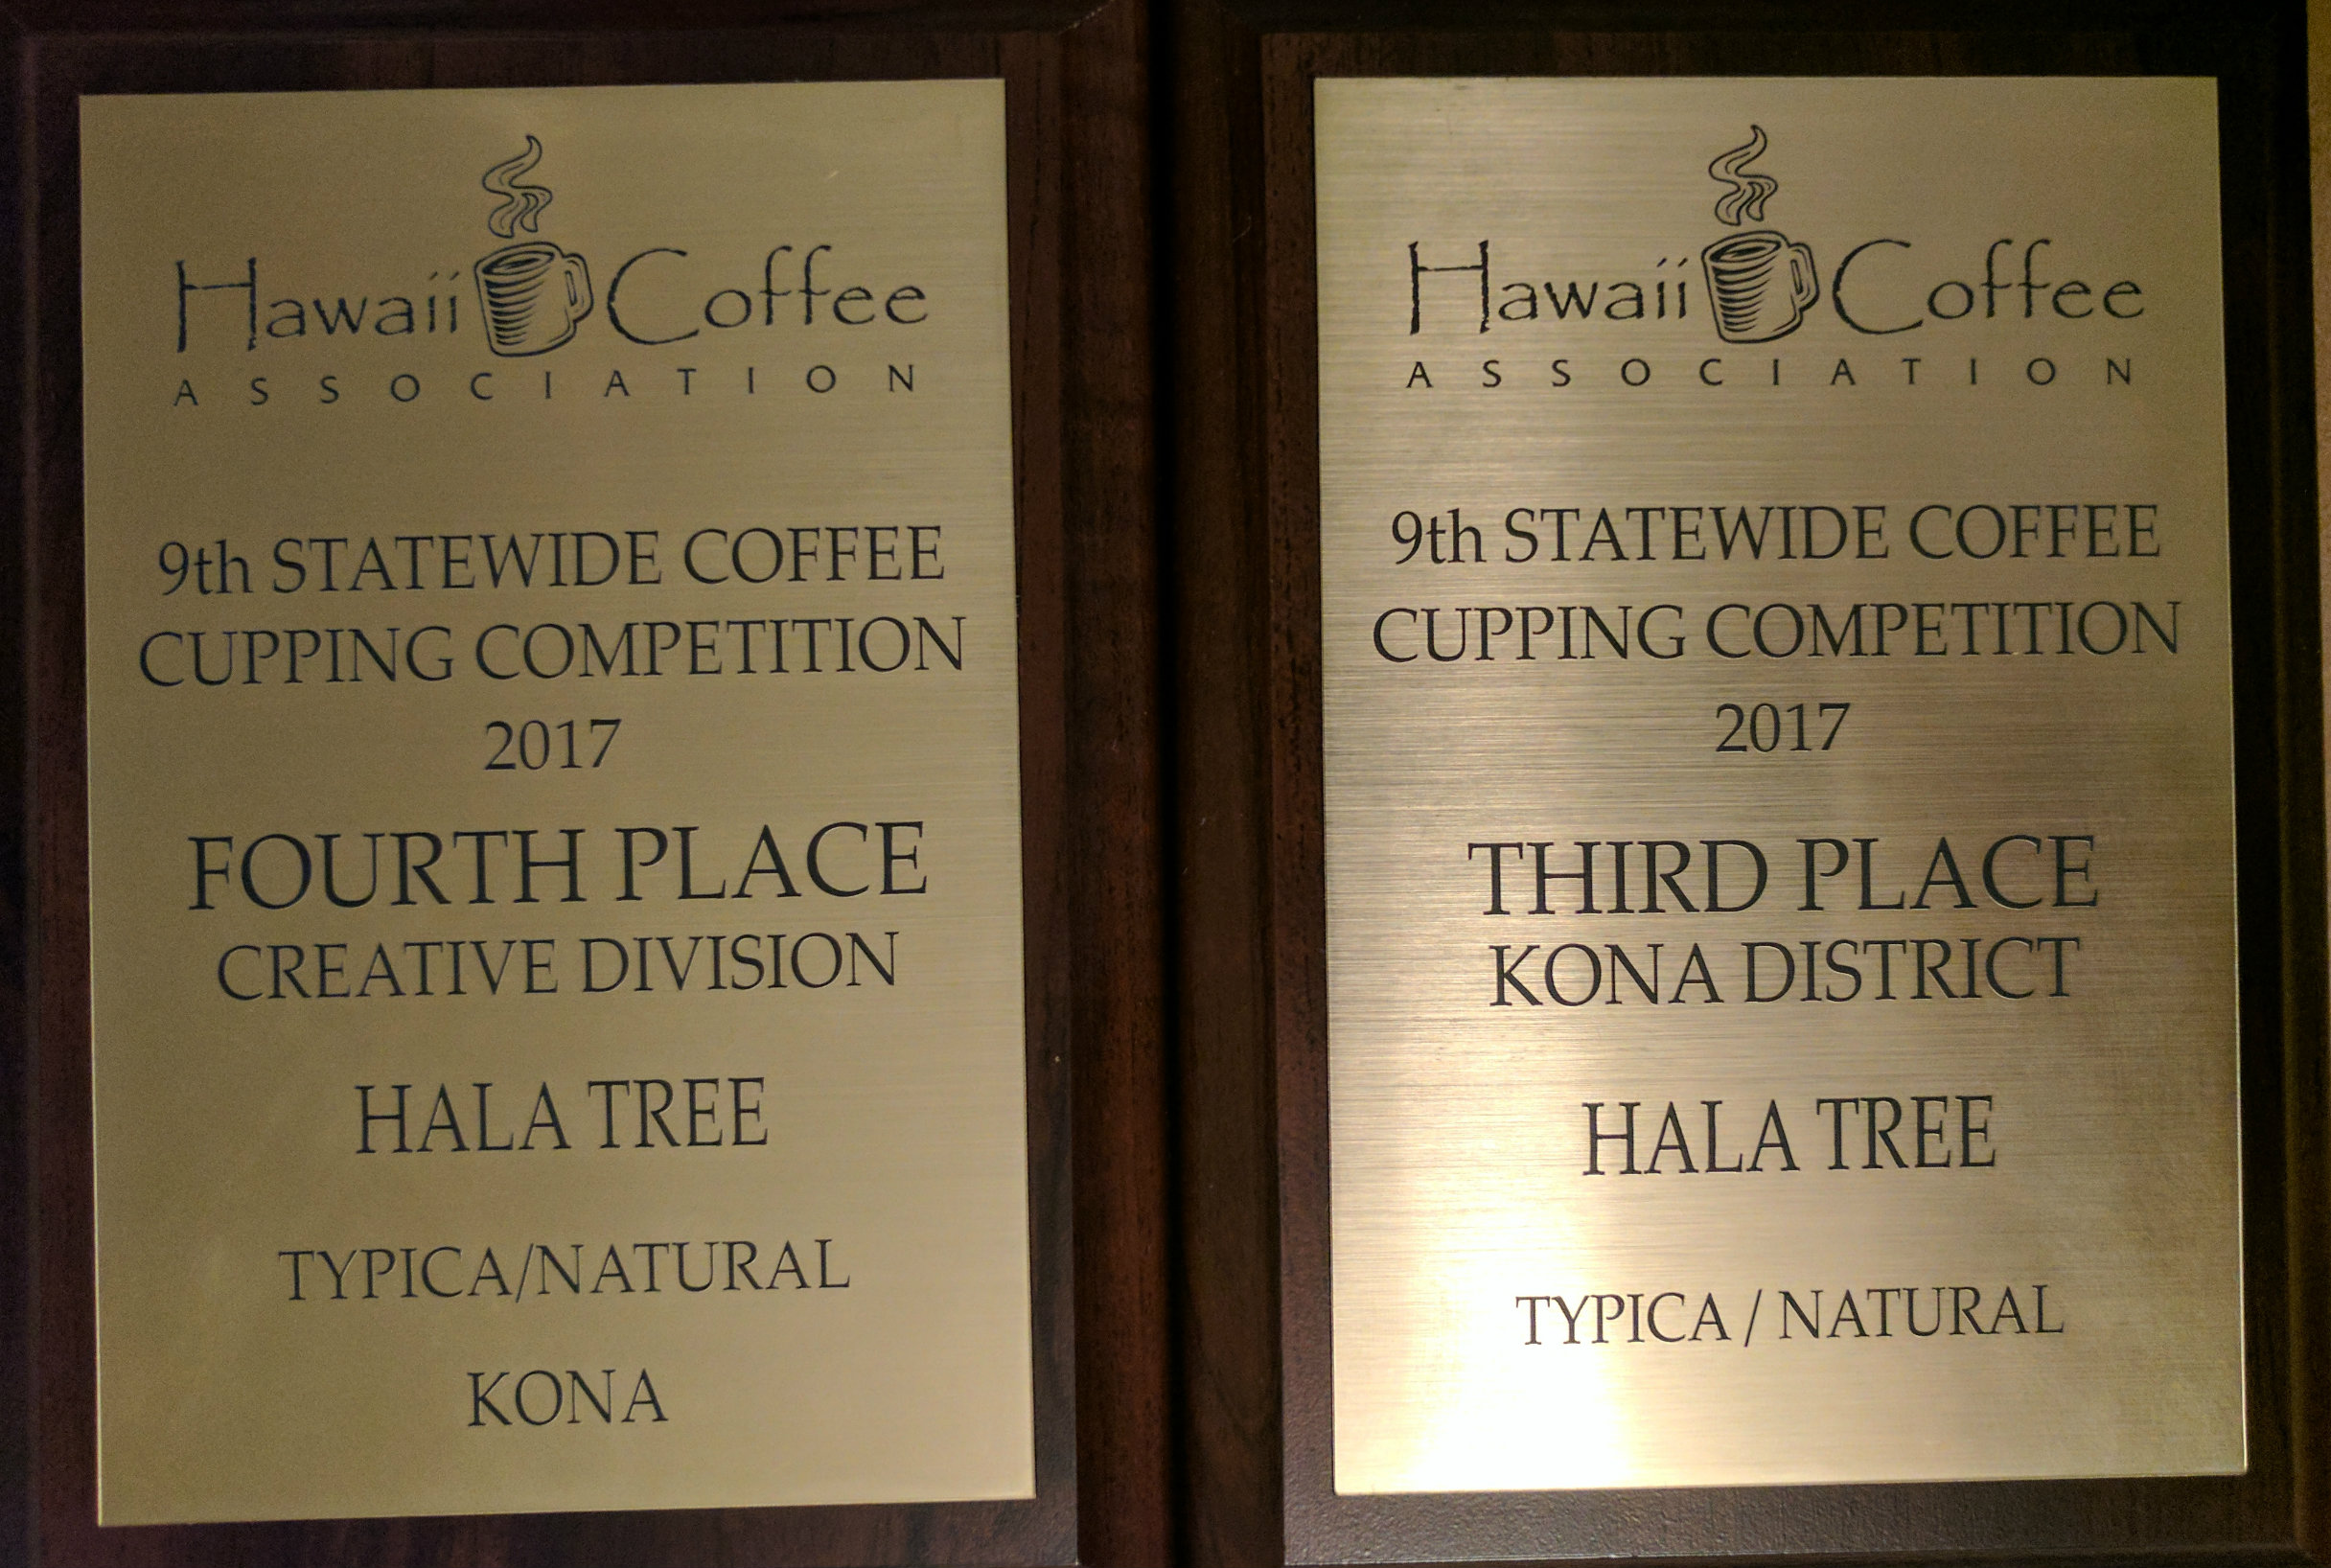 Hawaii Coffee Association